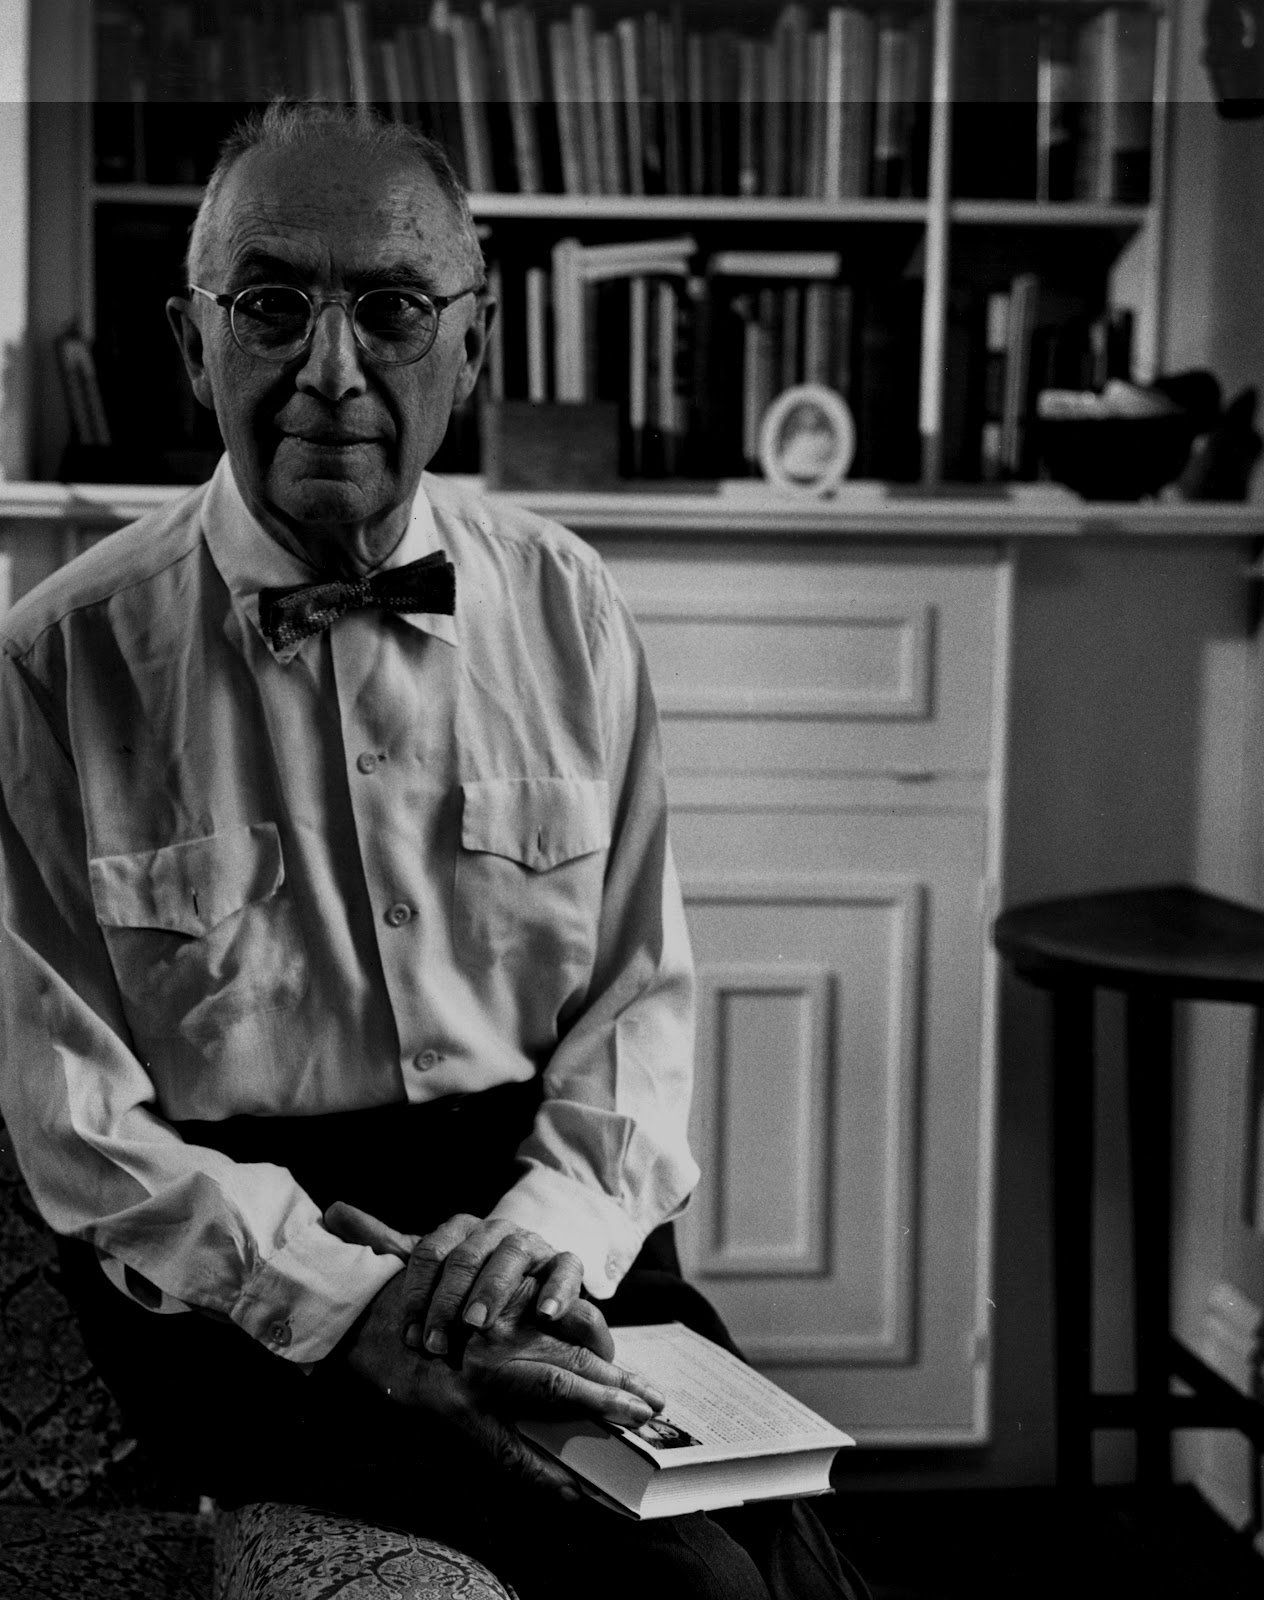 william carlos williams style The william carlos williams: poems community note includes chapter-by-chapter summary and analysis, character list, theme list, historical context, author biography and quizzes written by community members like you.